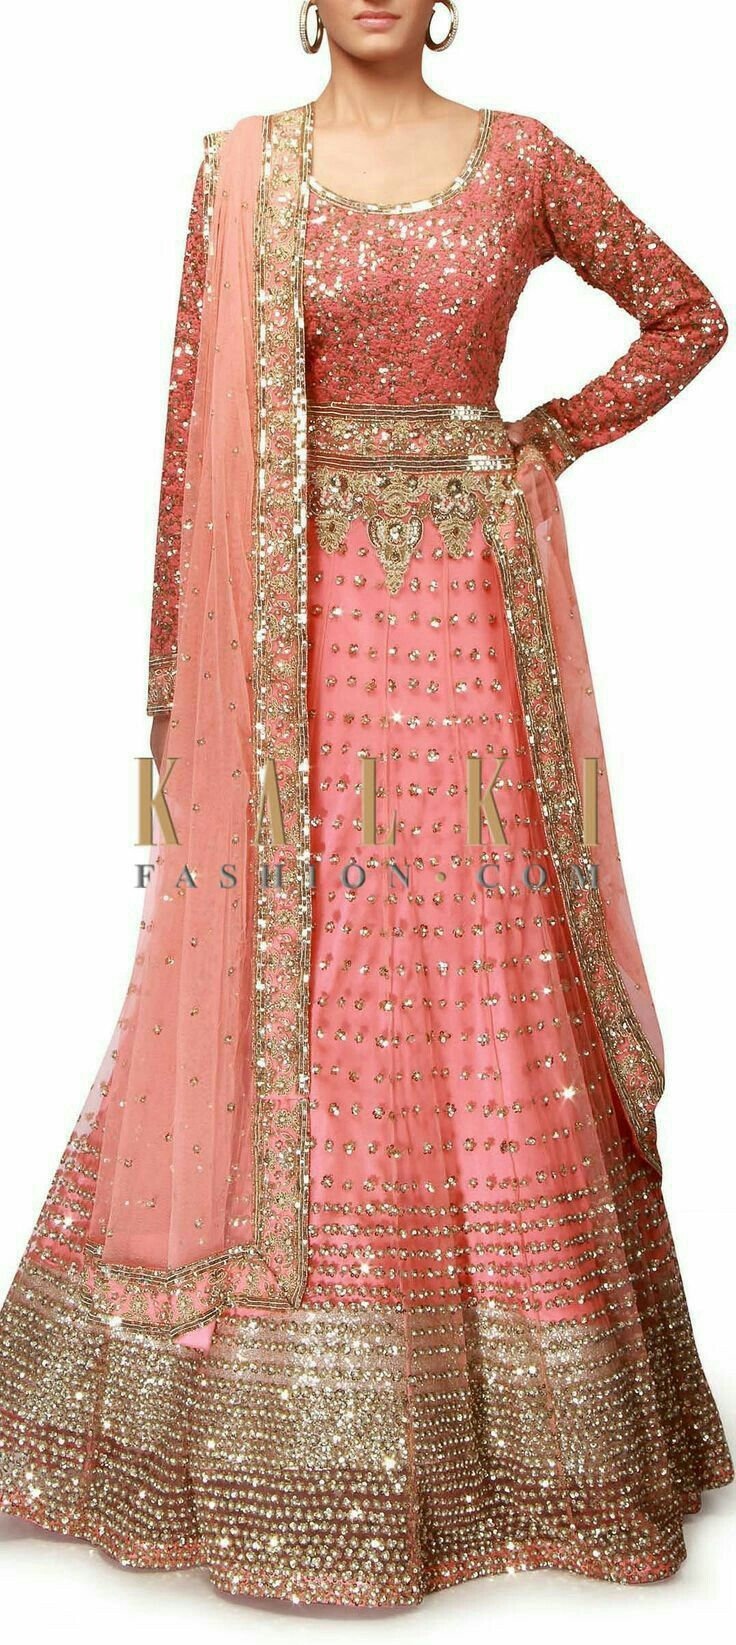 Pin de Mery Rey en Hindú - Bollywood - Indian - Sari - Lehenga ...